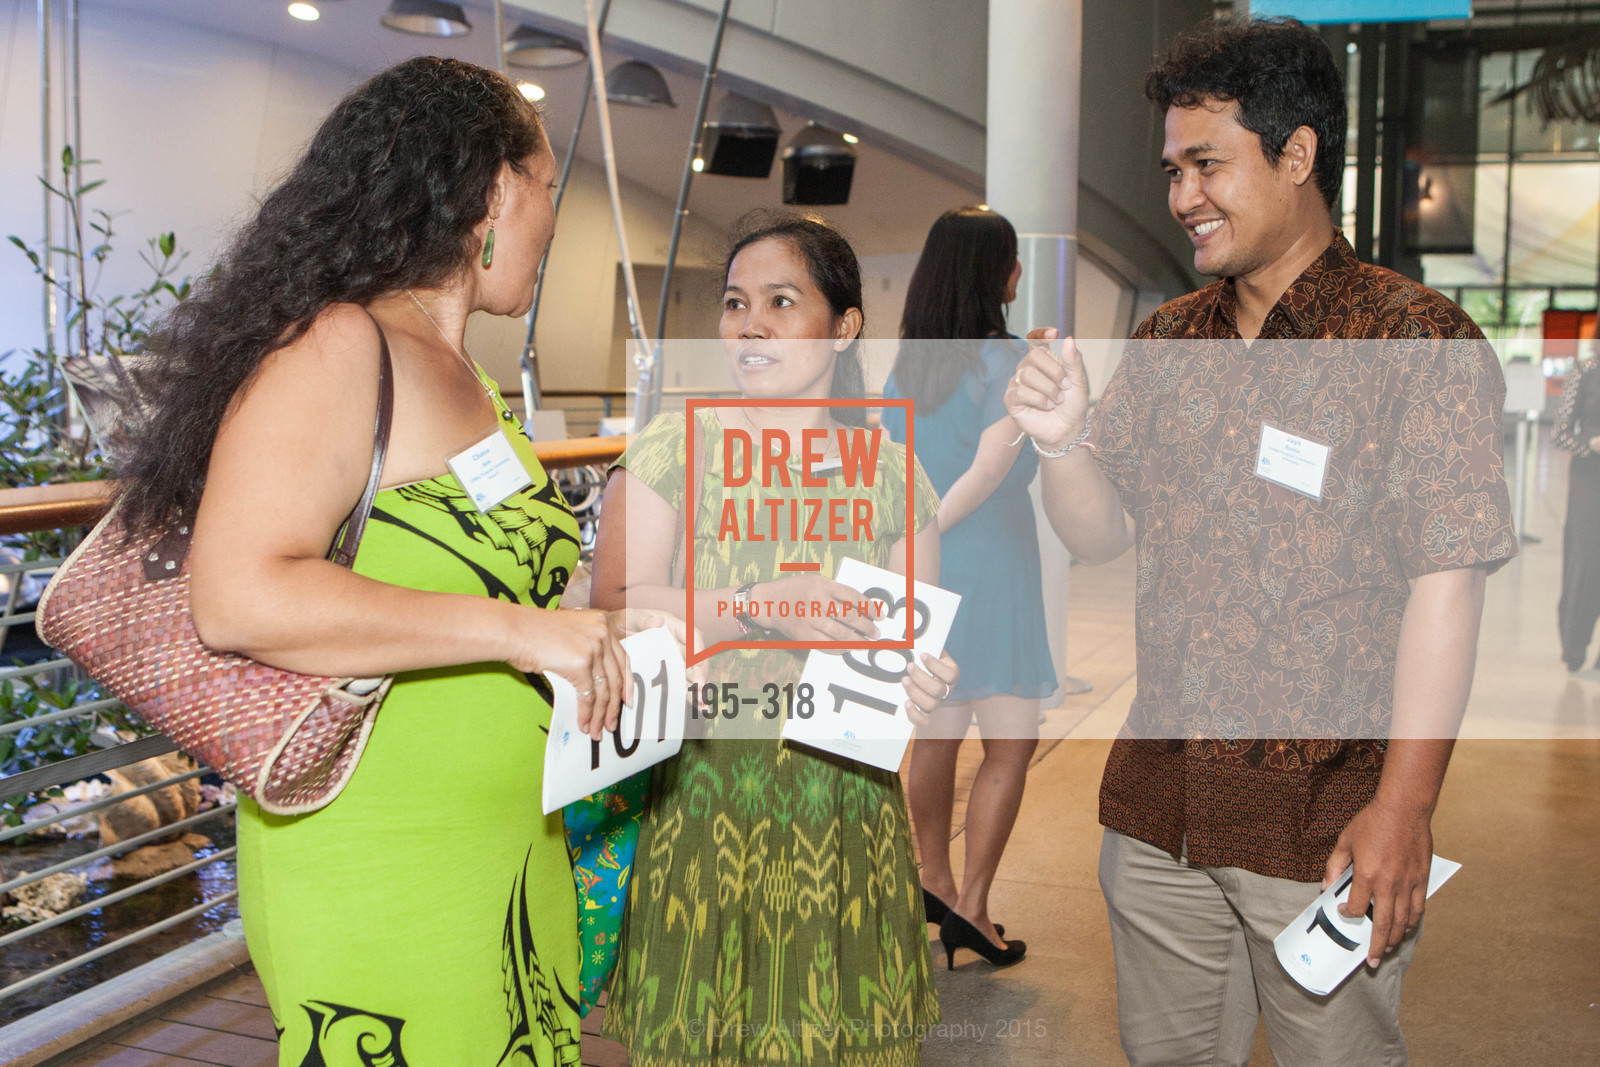 Chana Ane, Veronica Niken, Jaya Ratha, Coral Reef Alliance at the California Academy of Sciences, Academy of Sciences, September 26th, 2015,Drew Altizer, Drew Altizer Photography, full-service agency, private events, San Francisco photographer, photographer california